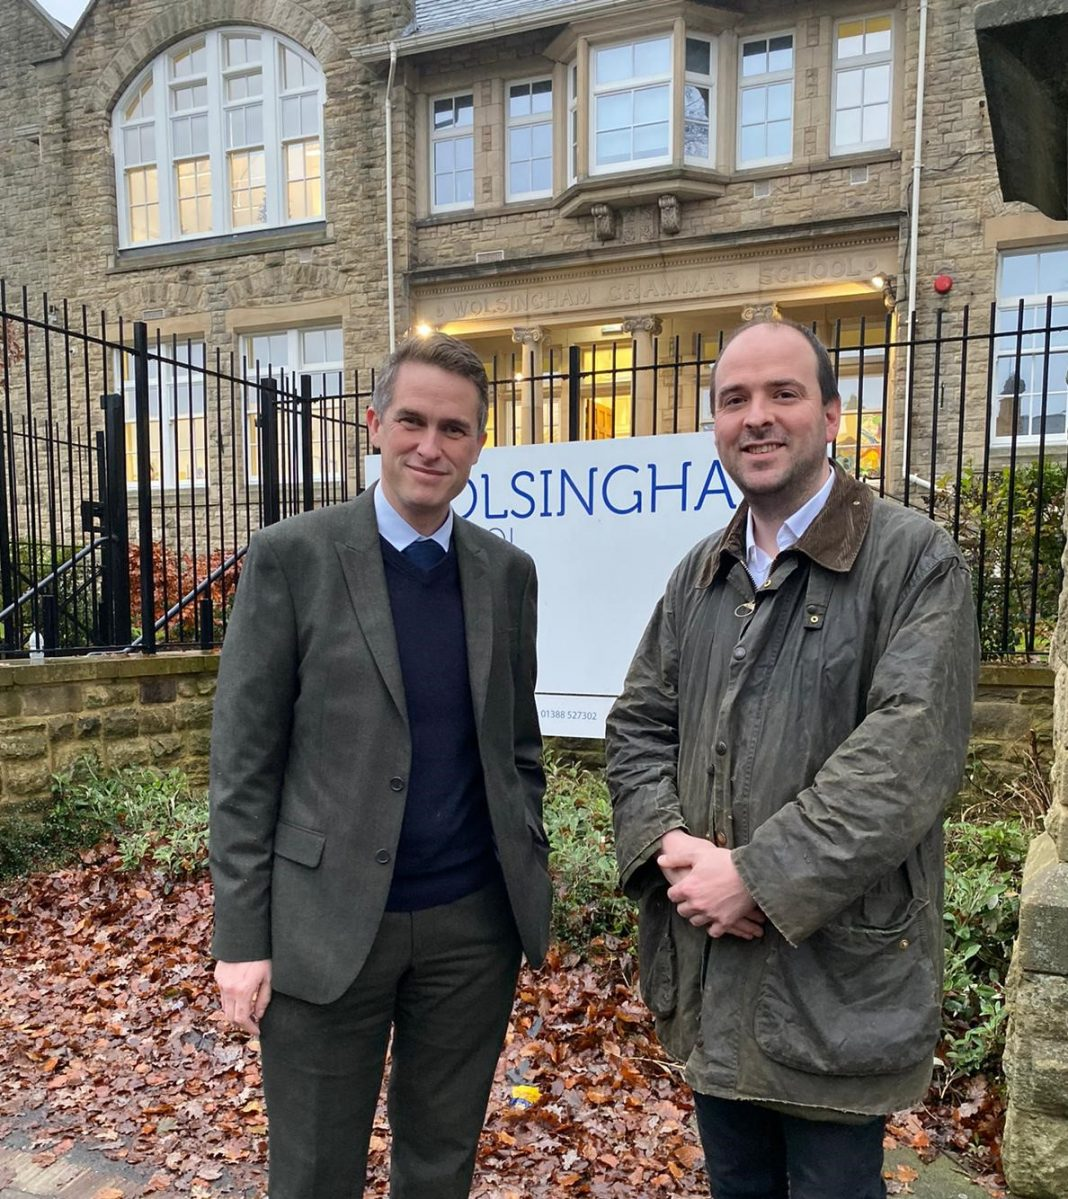 MP Richard Holden Launches Campaign Against The Closure of Wolsingham's Sixth Form